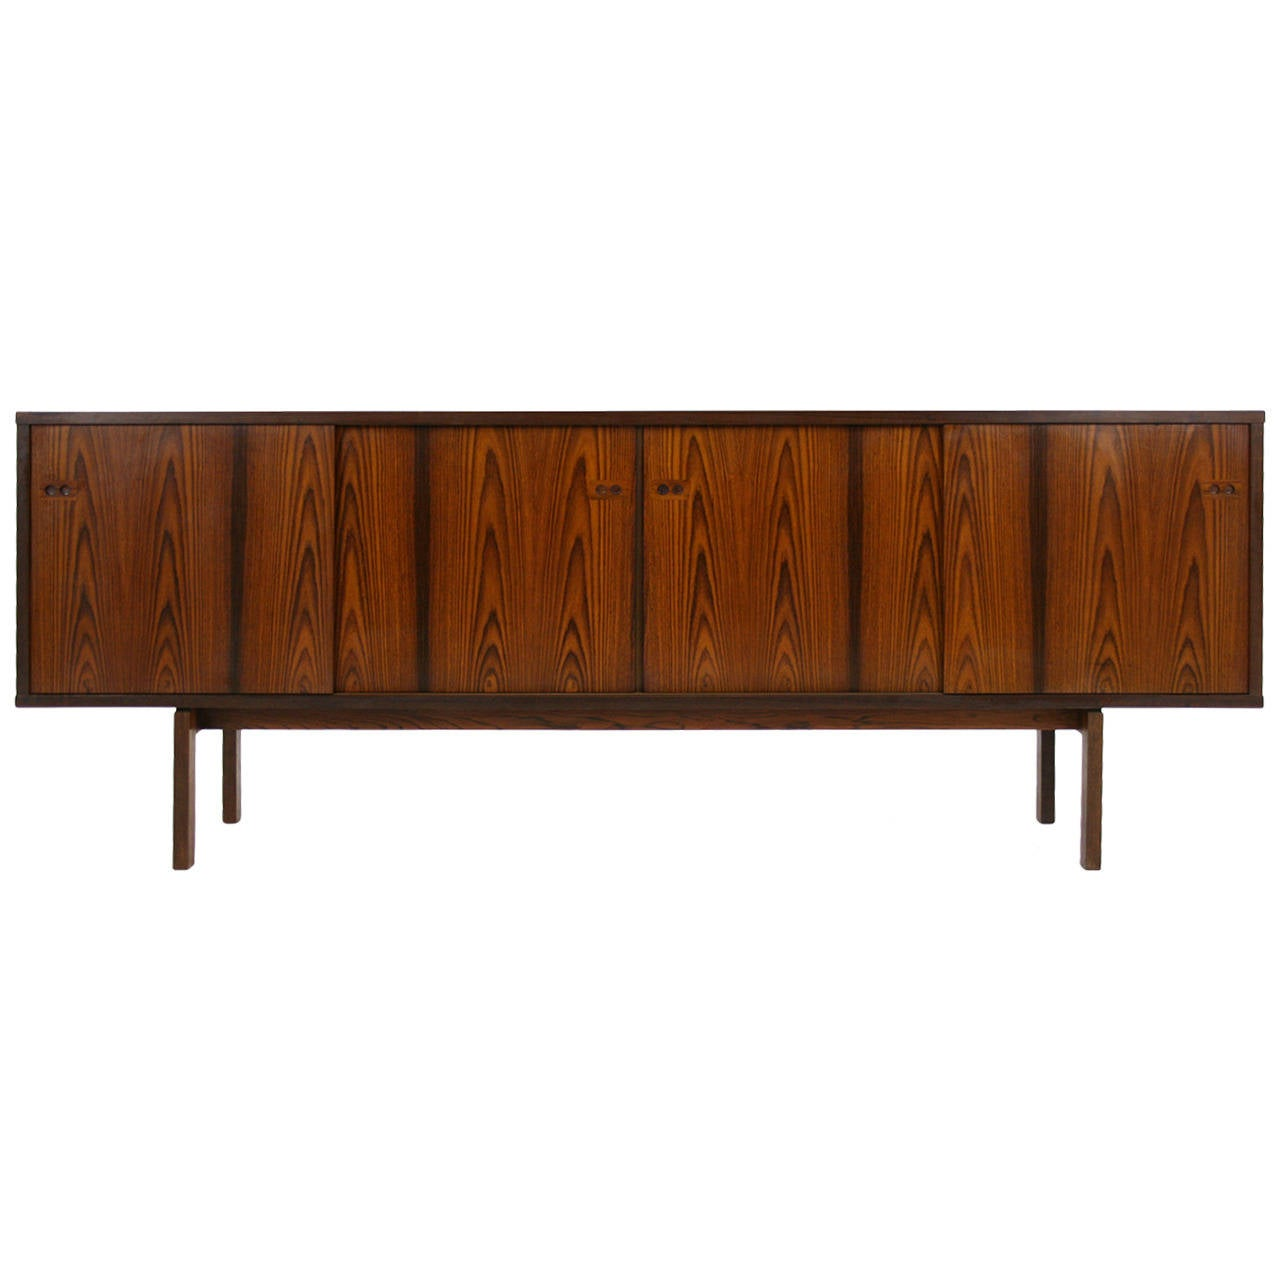 Danish Mid Century Modern Rosewood Sideboard Credenza By